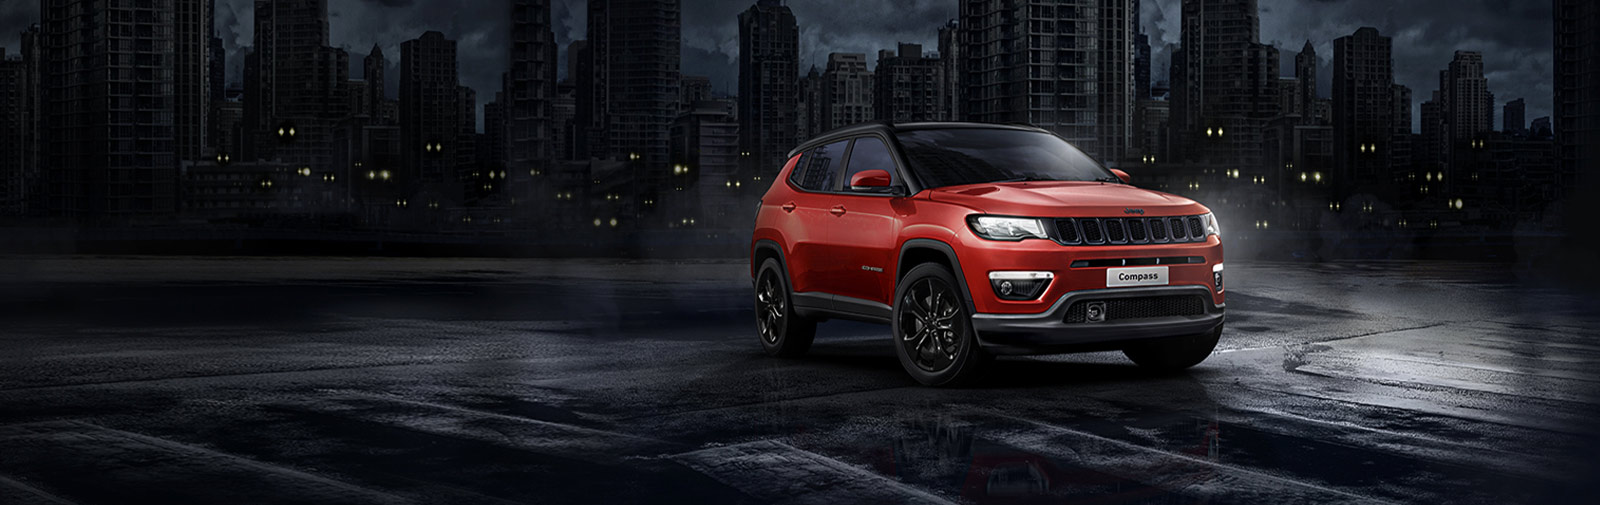 JEEP%20COMPASS%20FREEDOM